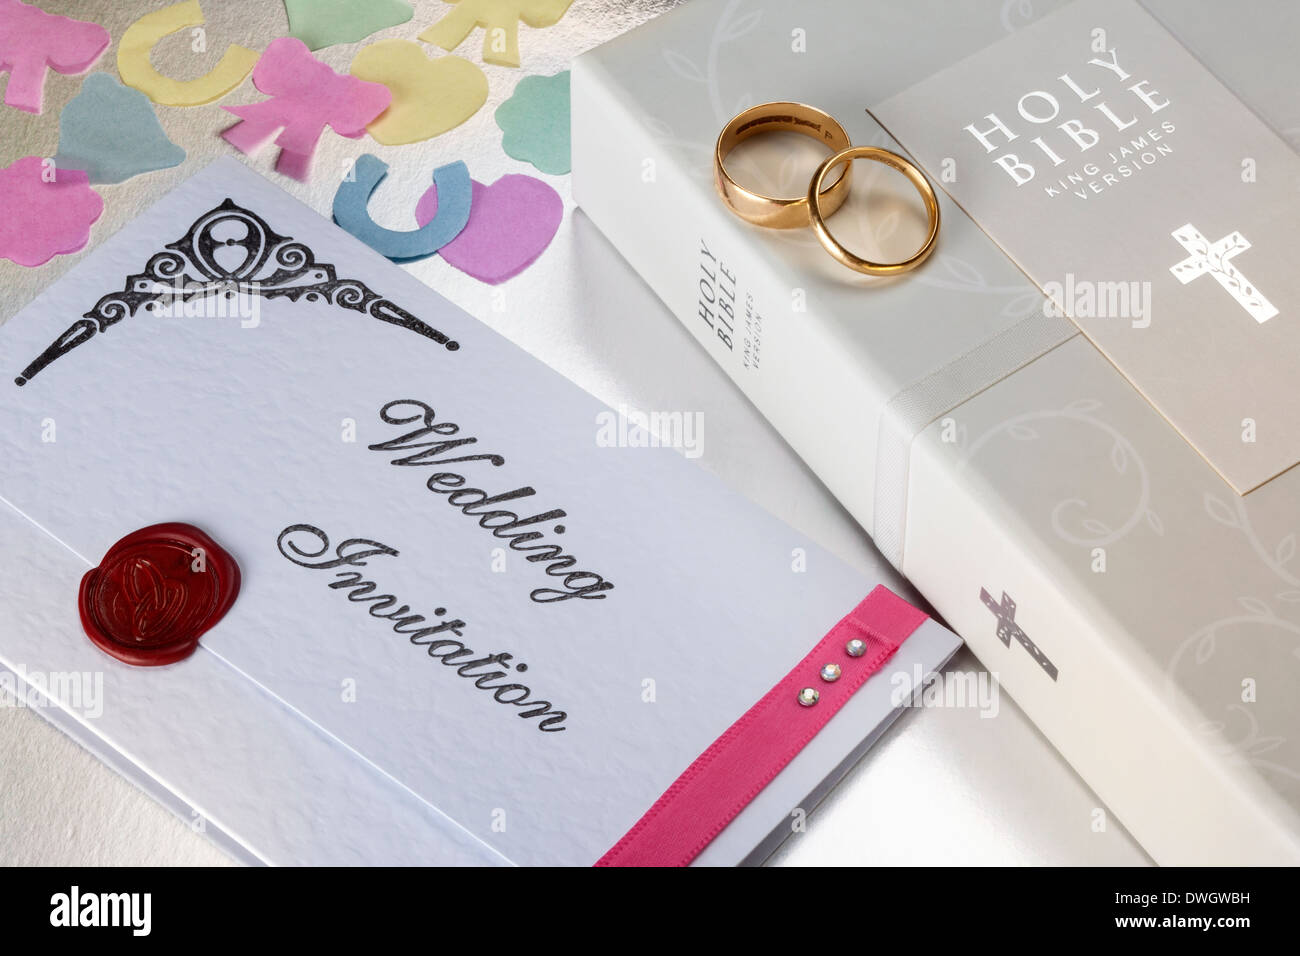 A Wedding Invitation and Holy Bible. - Stock Image